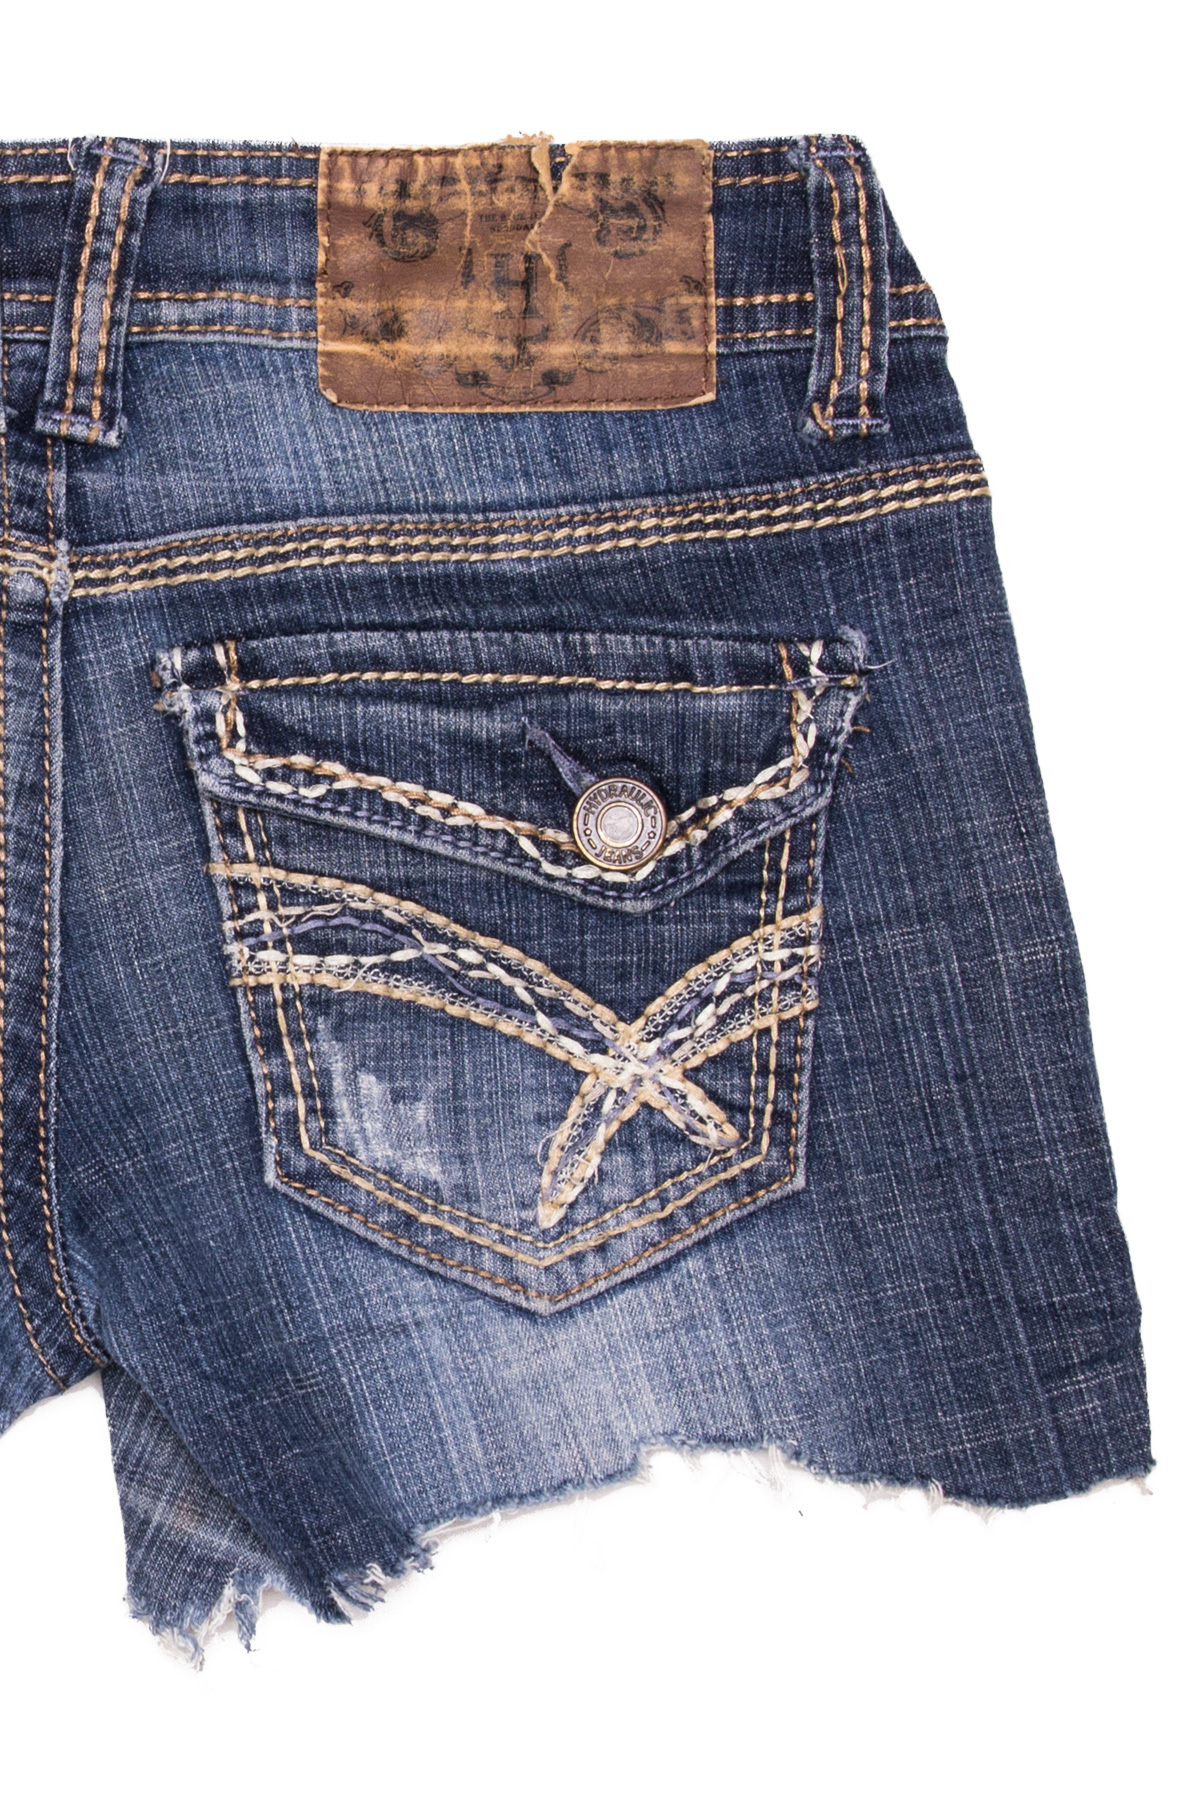 Cut Off Denim Shorts 40